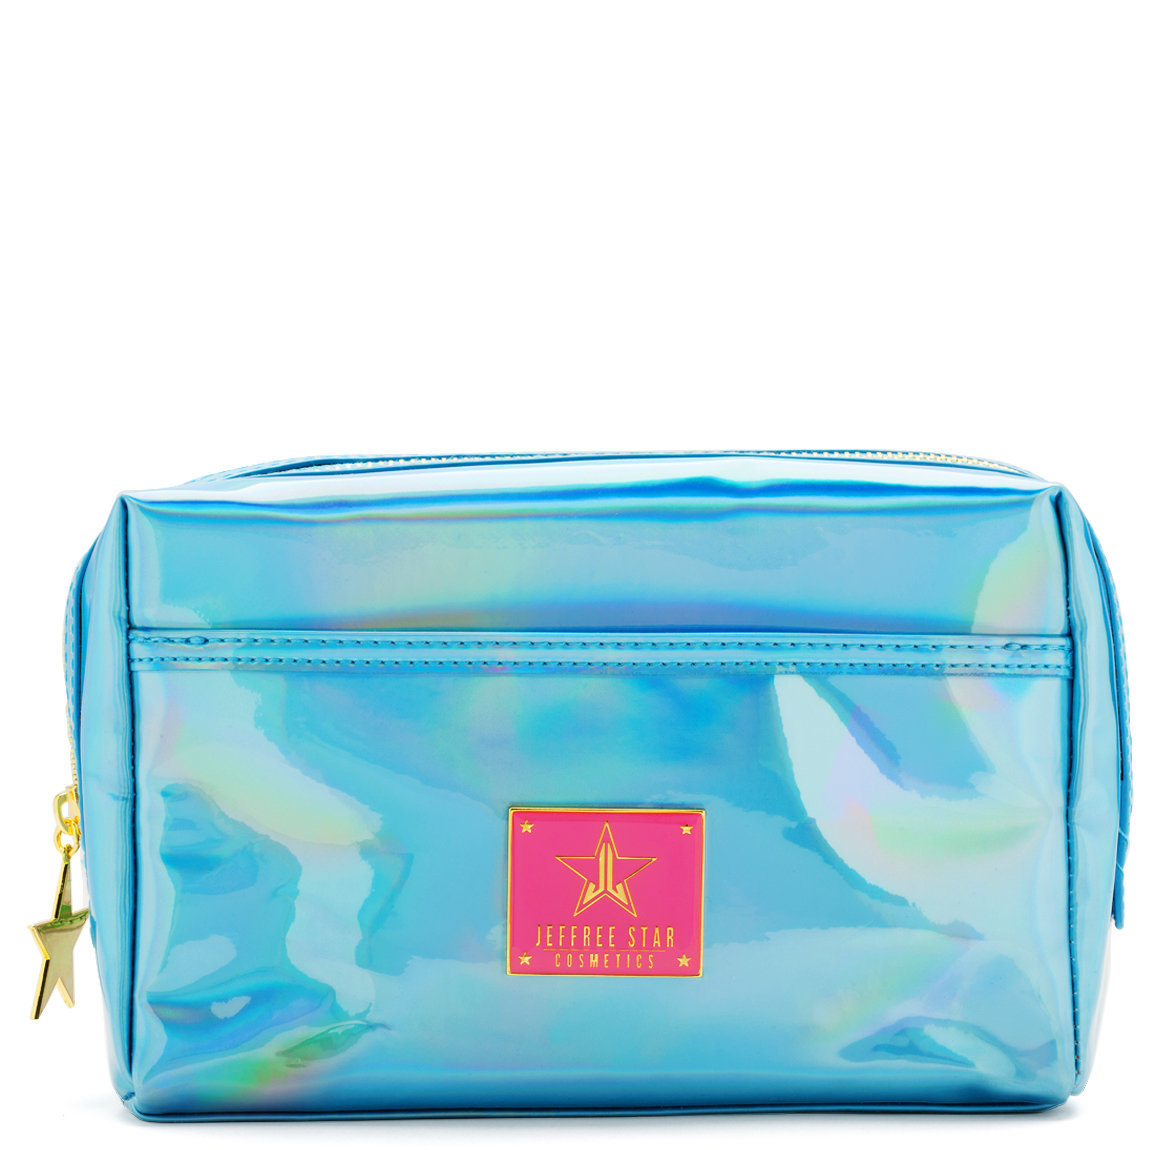 Jeffree Star Cosmetics Makeup Bag Holographic Blue product swatch.